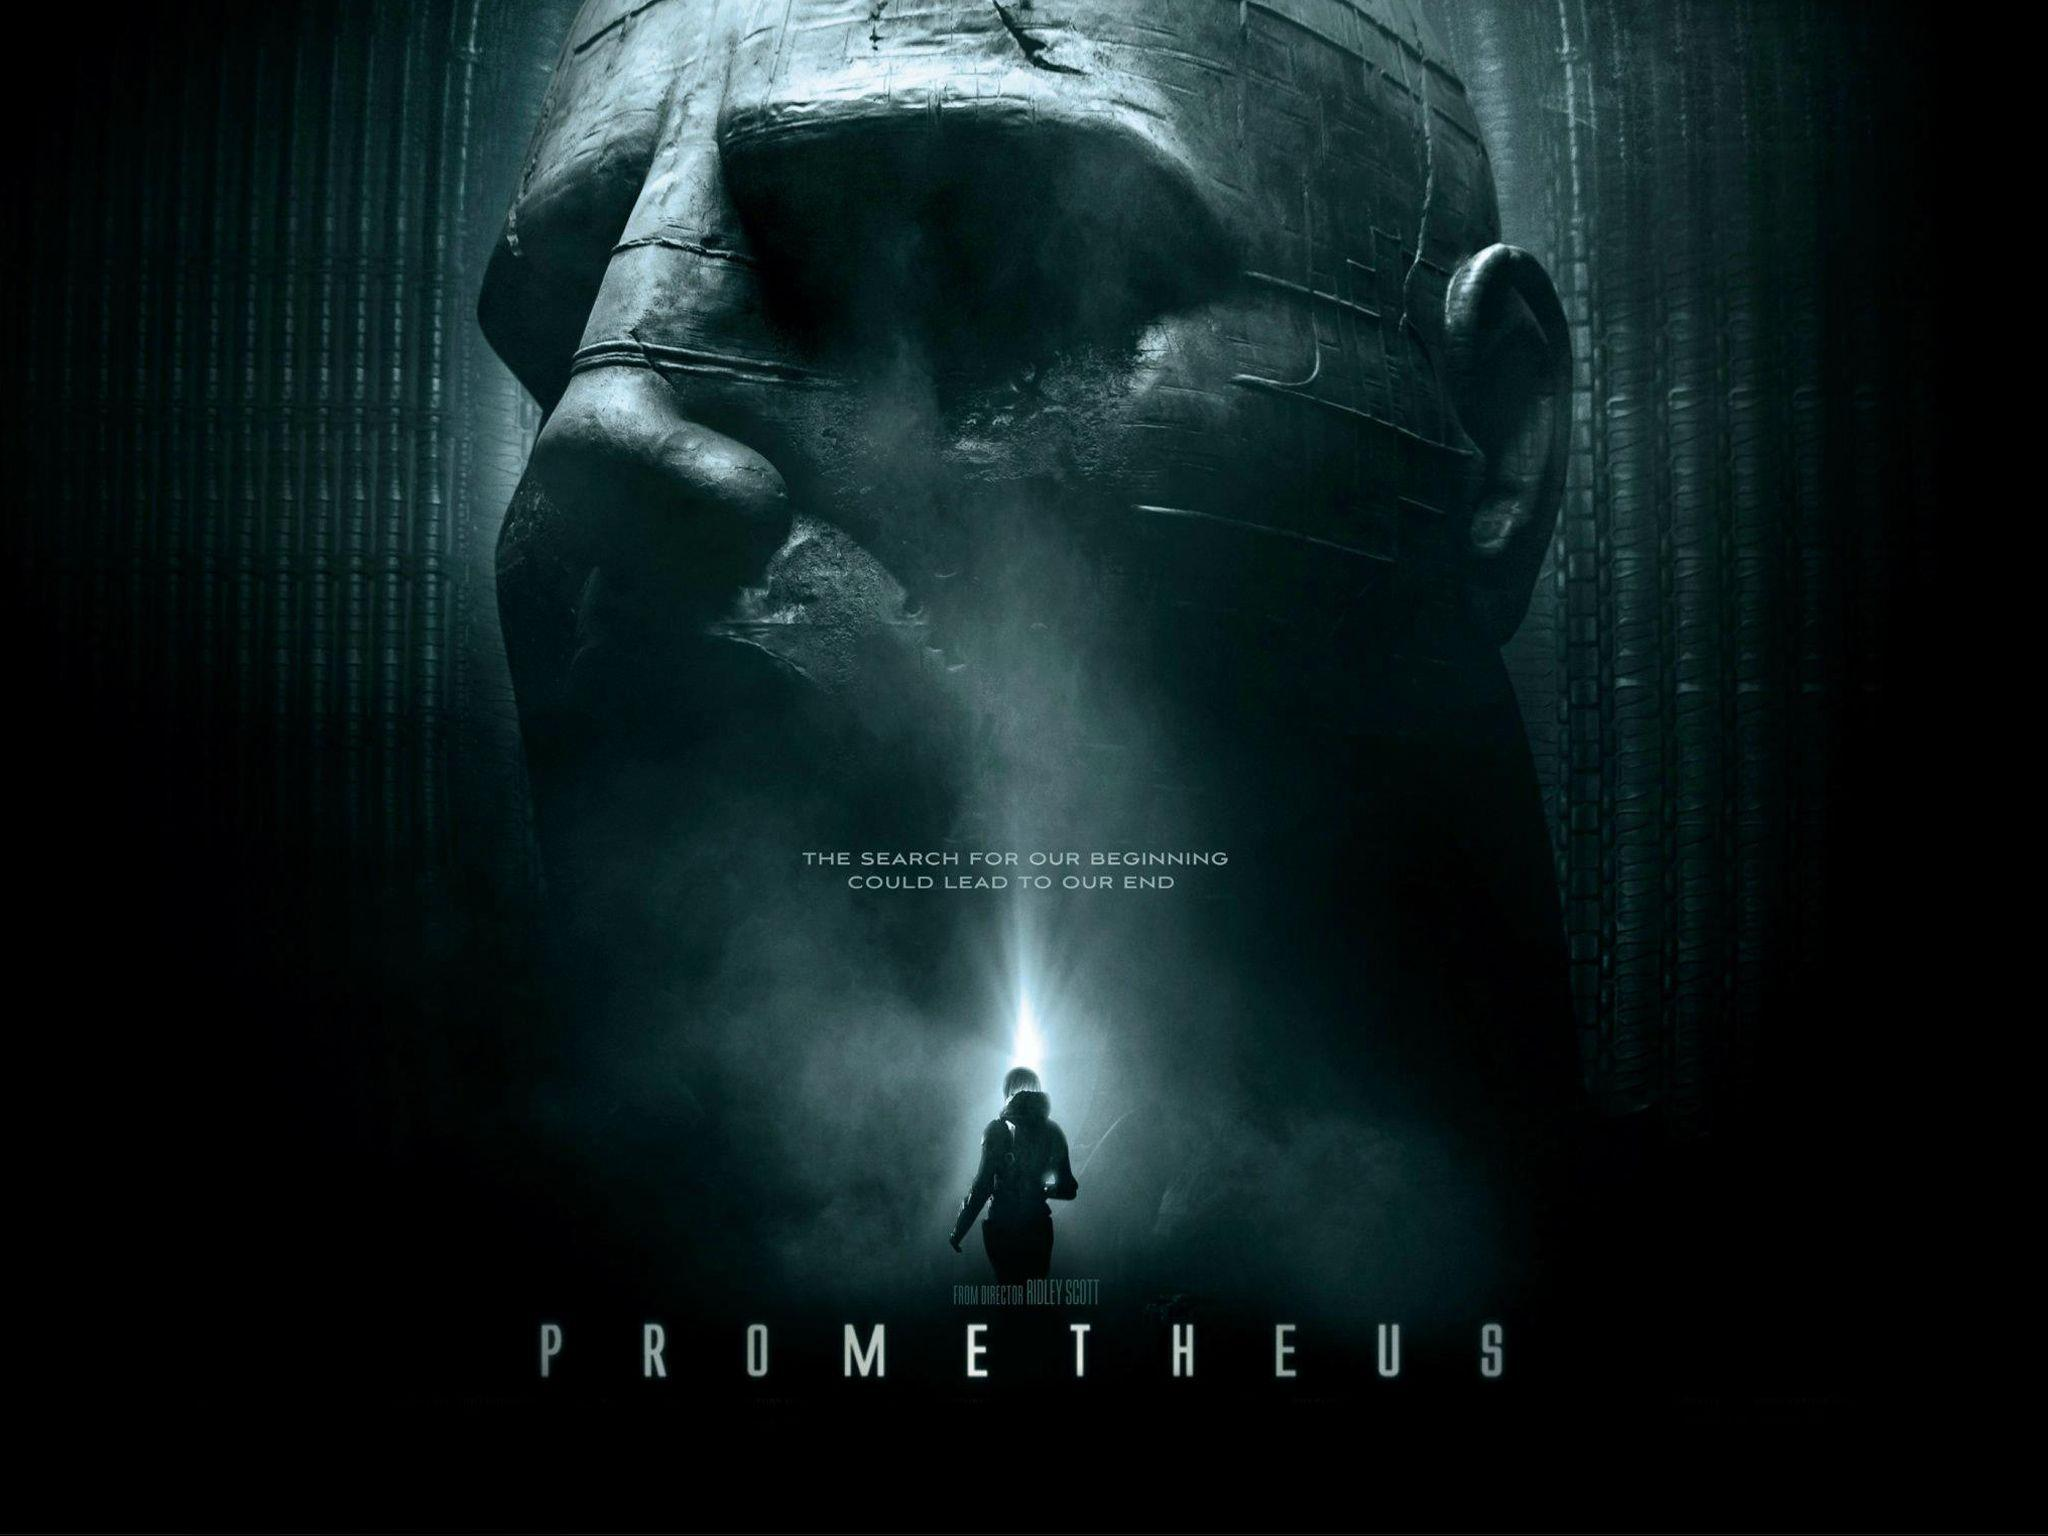 Ridley Scott Prometheus Wallpapers